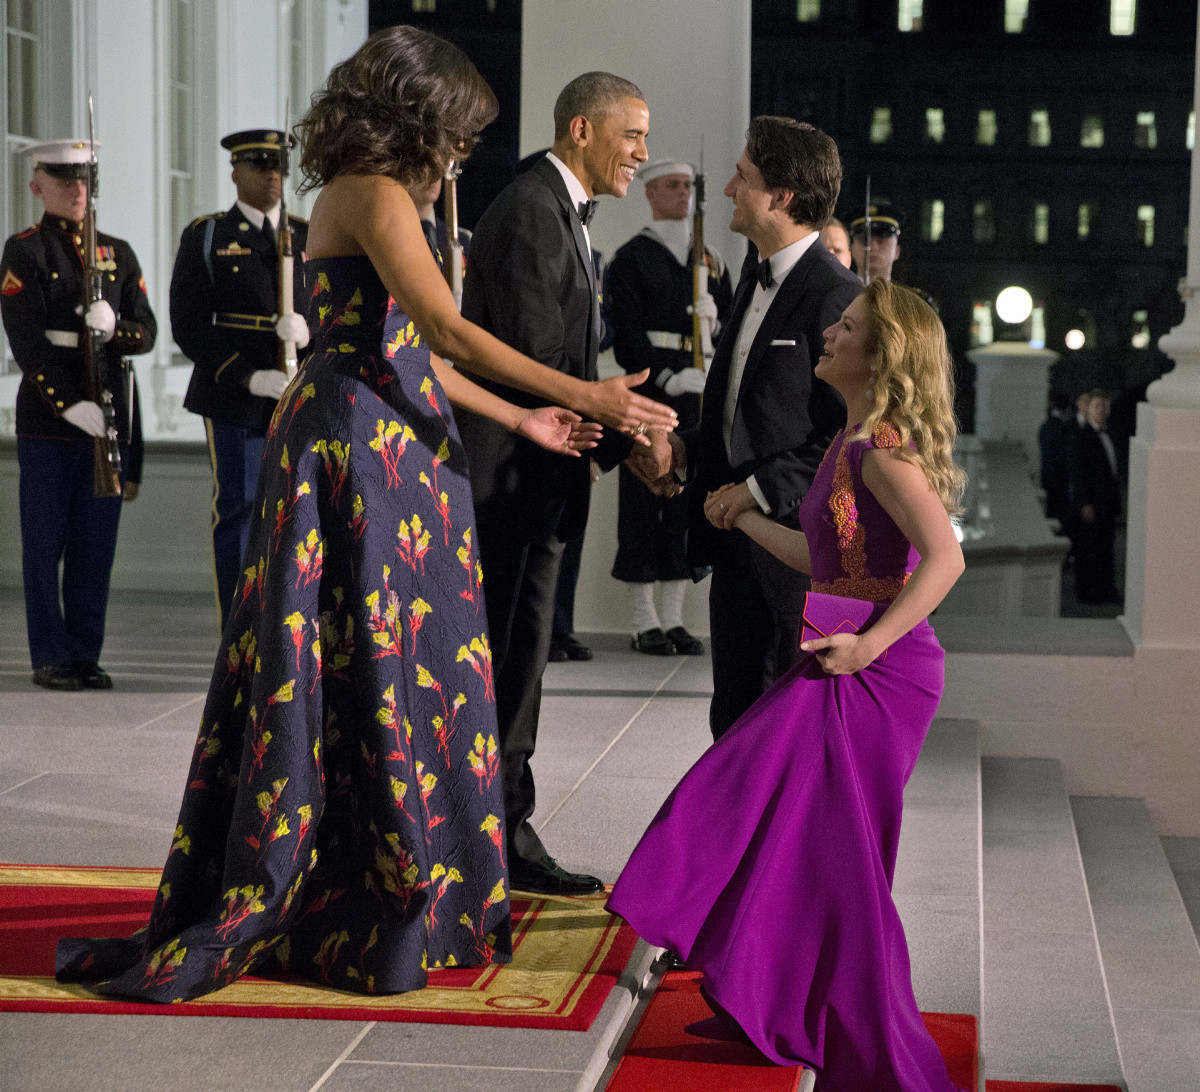 State Dinner 2016  Glitz and glamour as Justin Trudeau attends state dinner